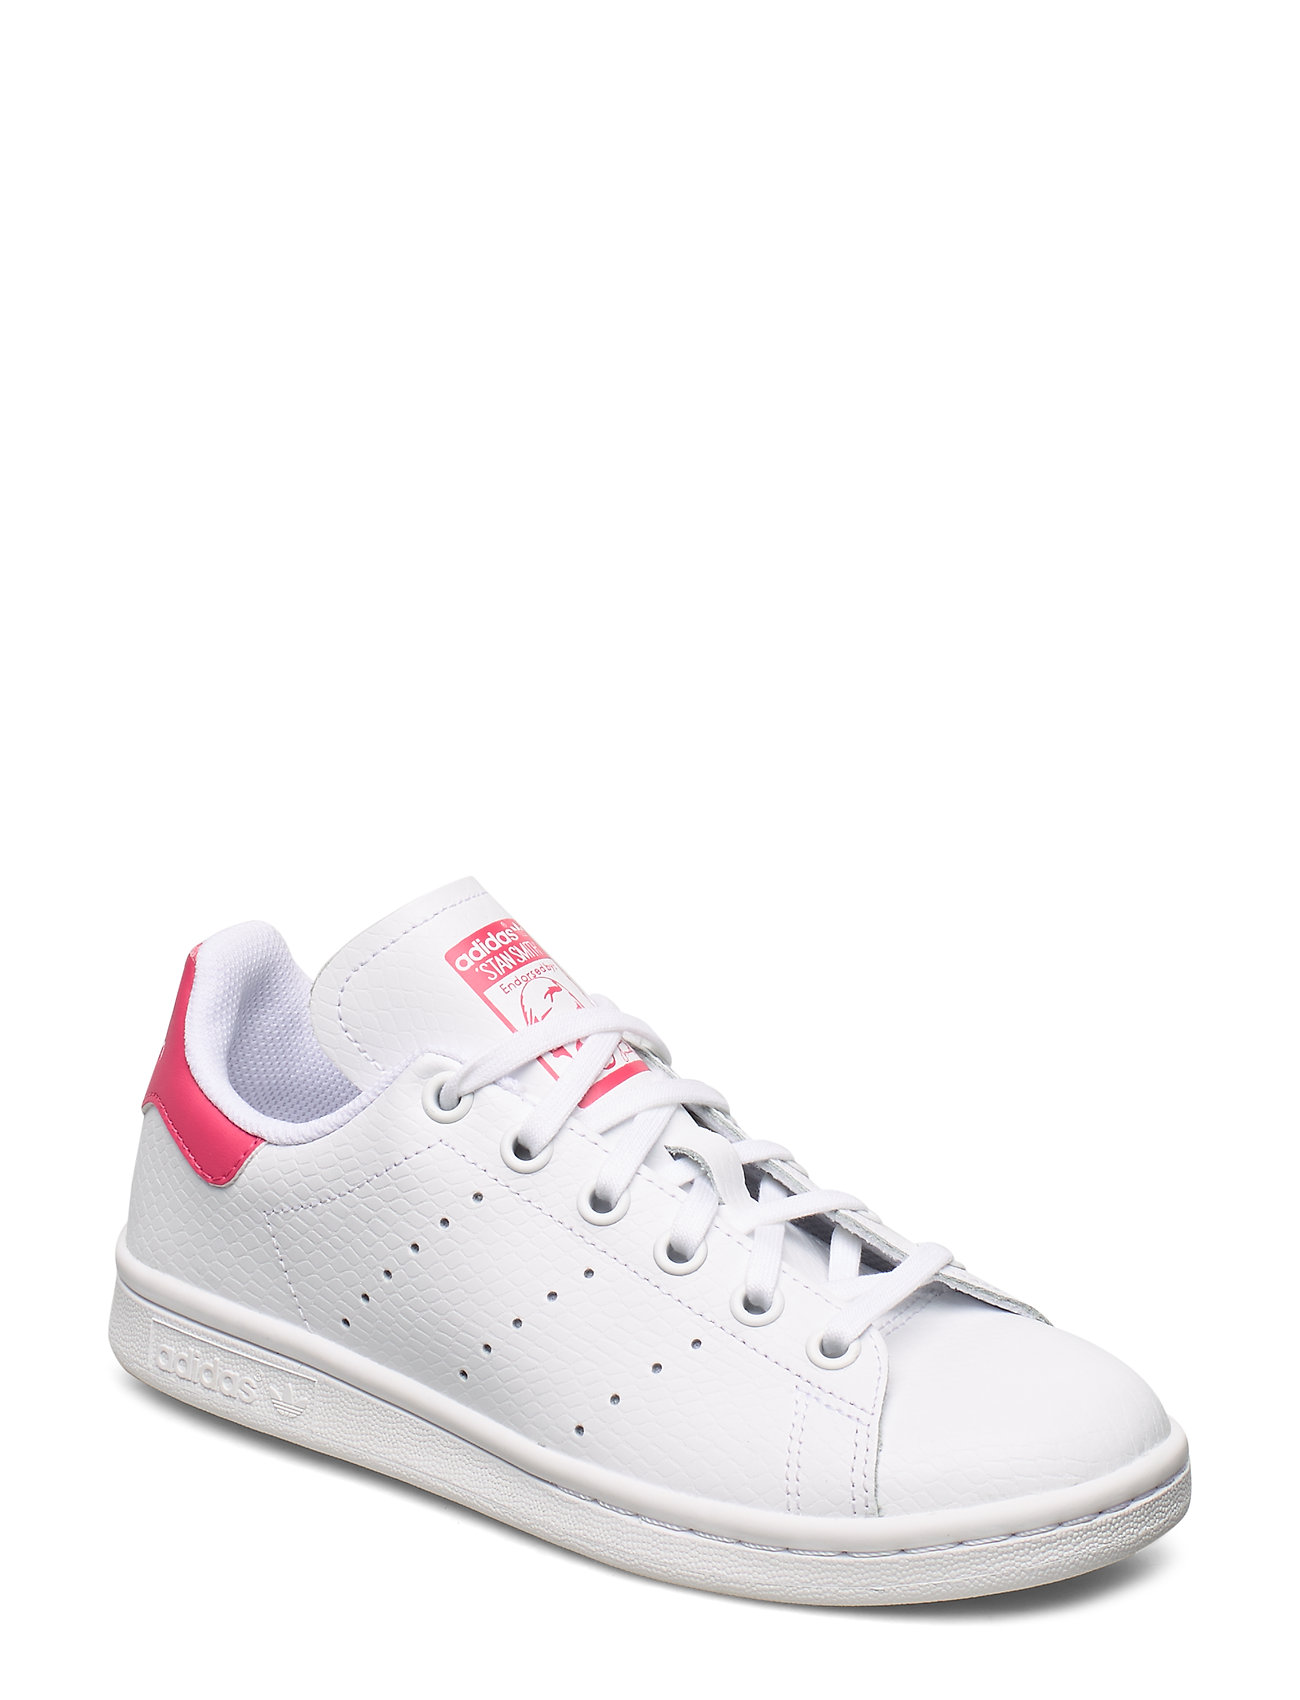 adidas Originals STAN SMITH J - FTWWHT/FTWWHT/REAPNK